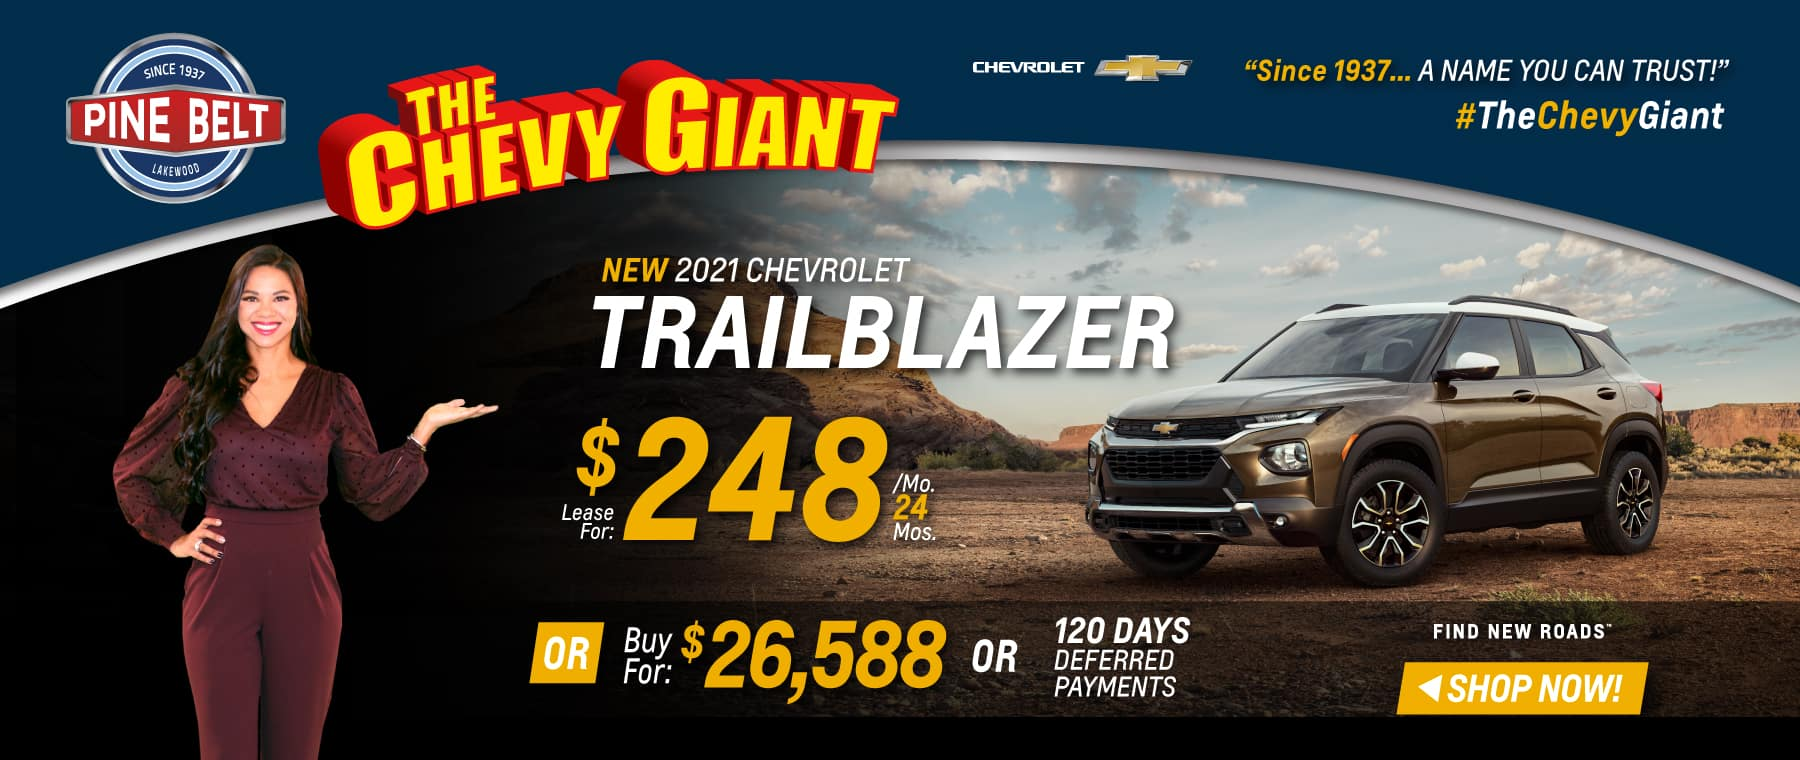 2021 Chevy Traverse Lease, Purchase or Finance Deals